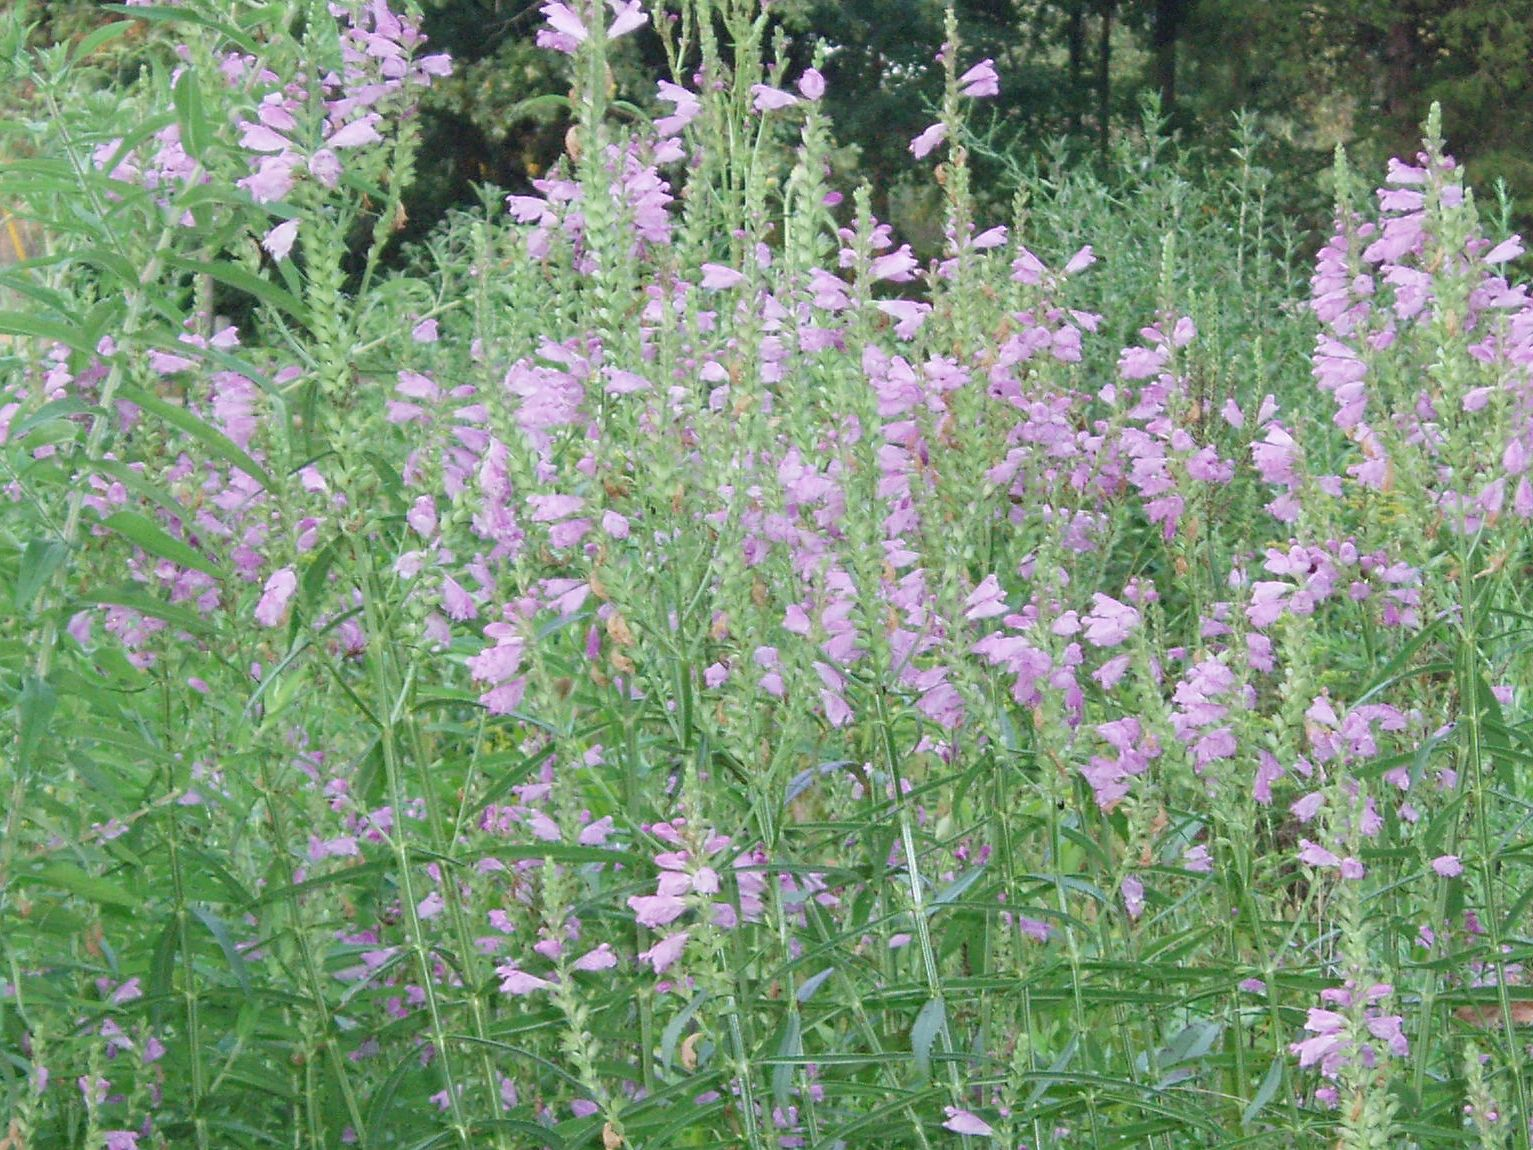 "{""blocks"":[{""key"":""35iab"",""text"":""Physostegia virginiana Obedient Plant False Dragonhead - potted plants email john@easywildflowers.com"",""type"":""unstyled"",""depth"":0,""inlineStyleRanges"":[],""entityRanges"":[],""data"":{}}],""entityMap"":{}}"